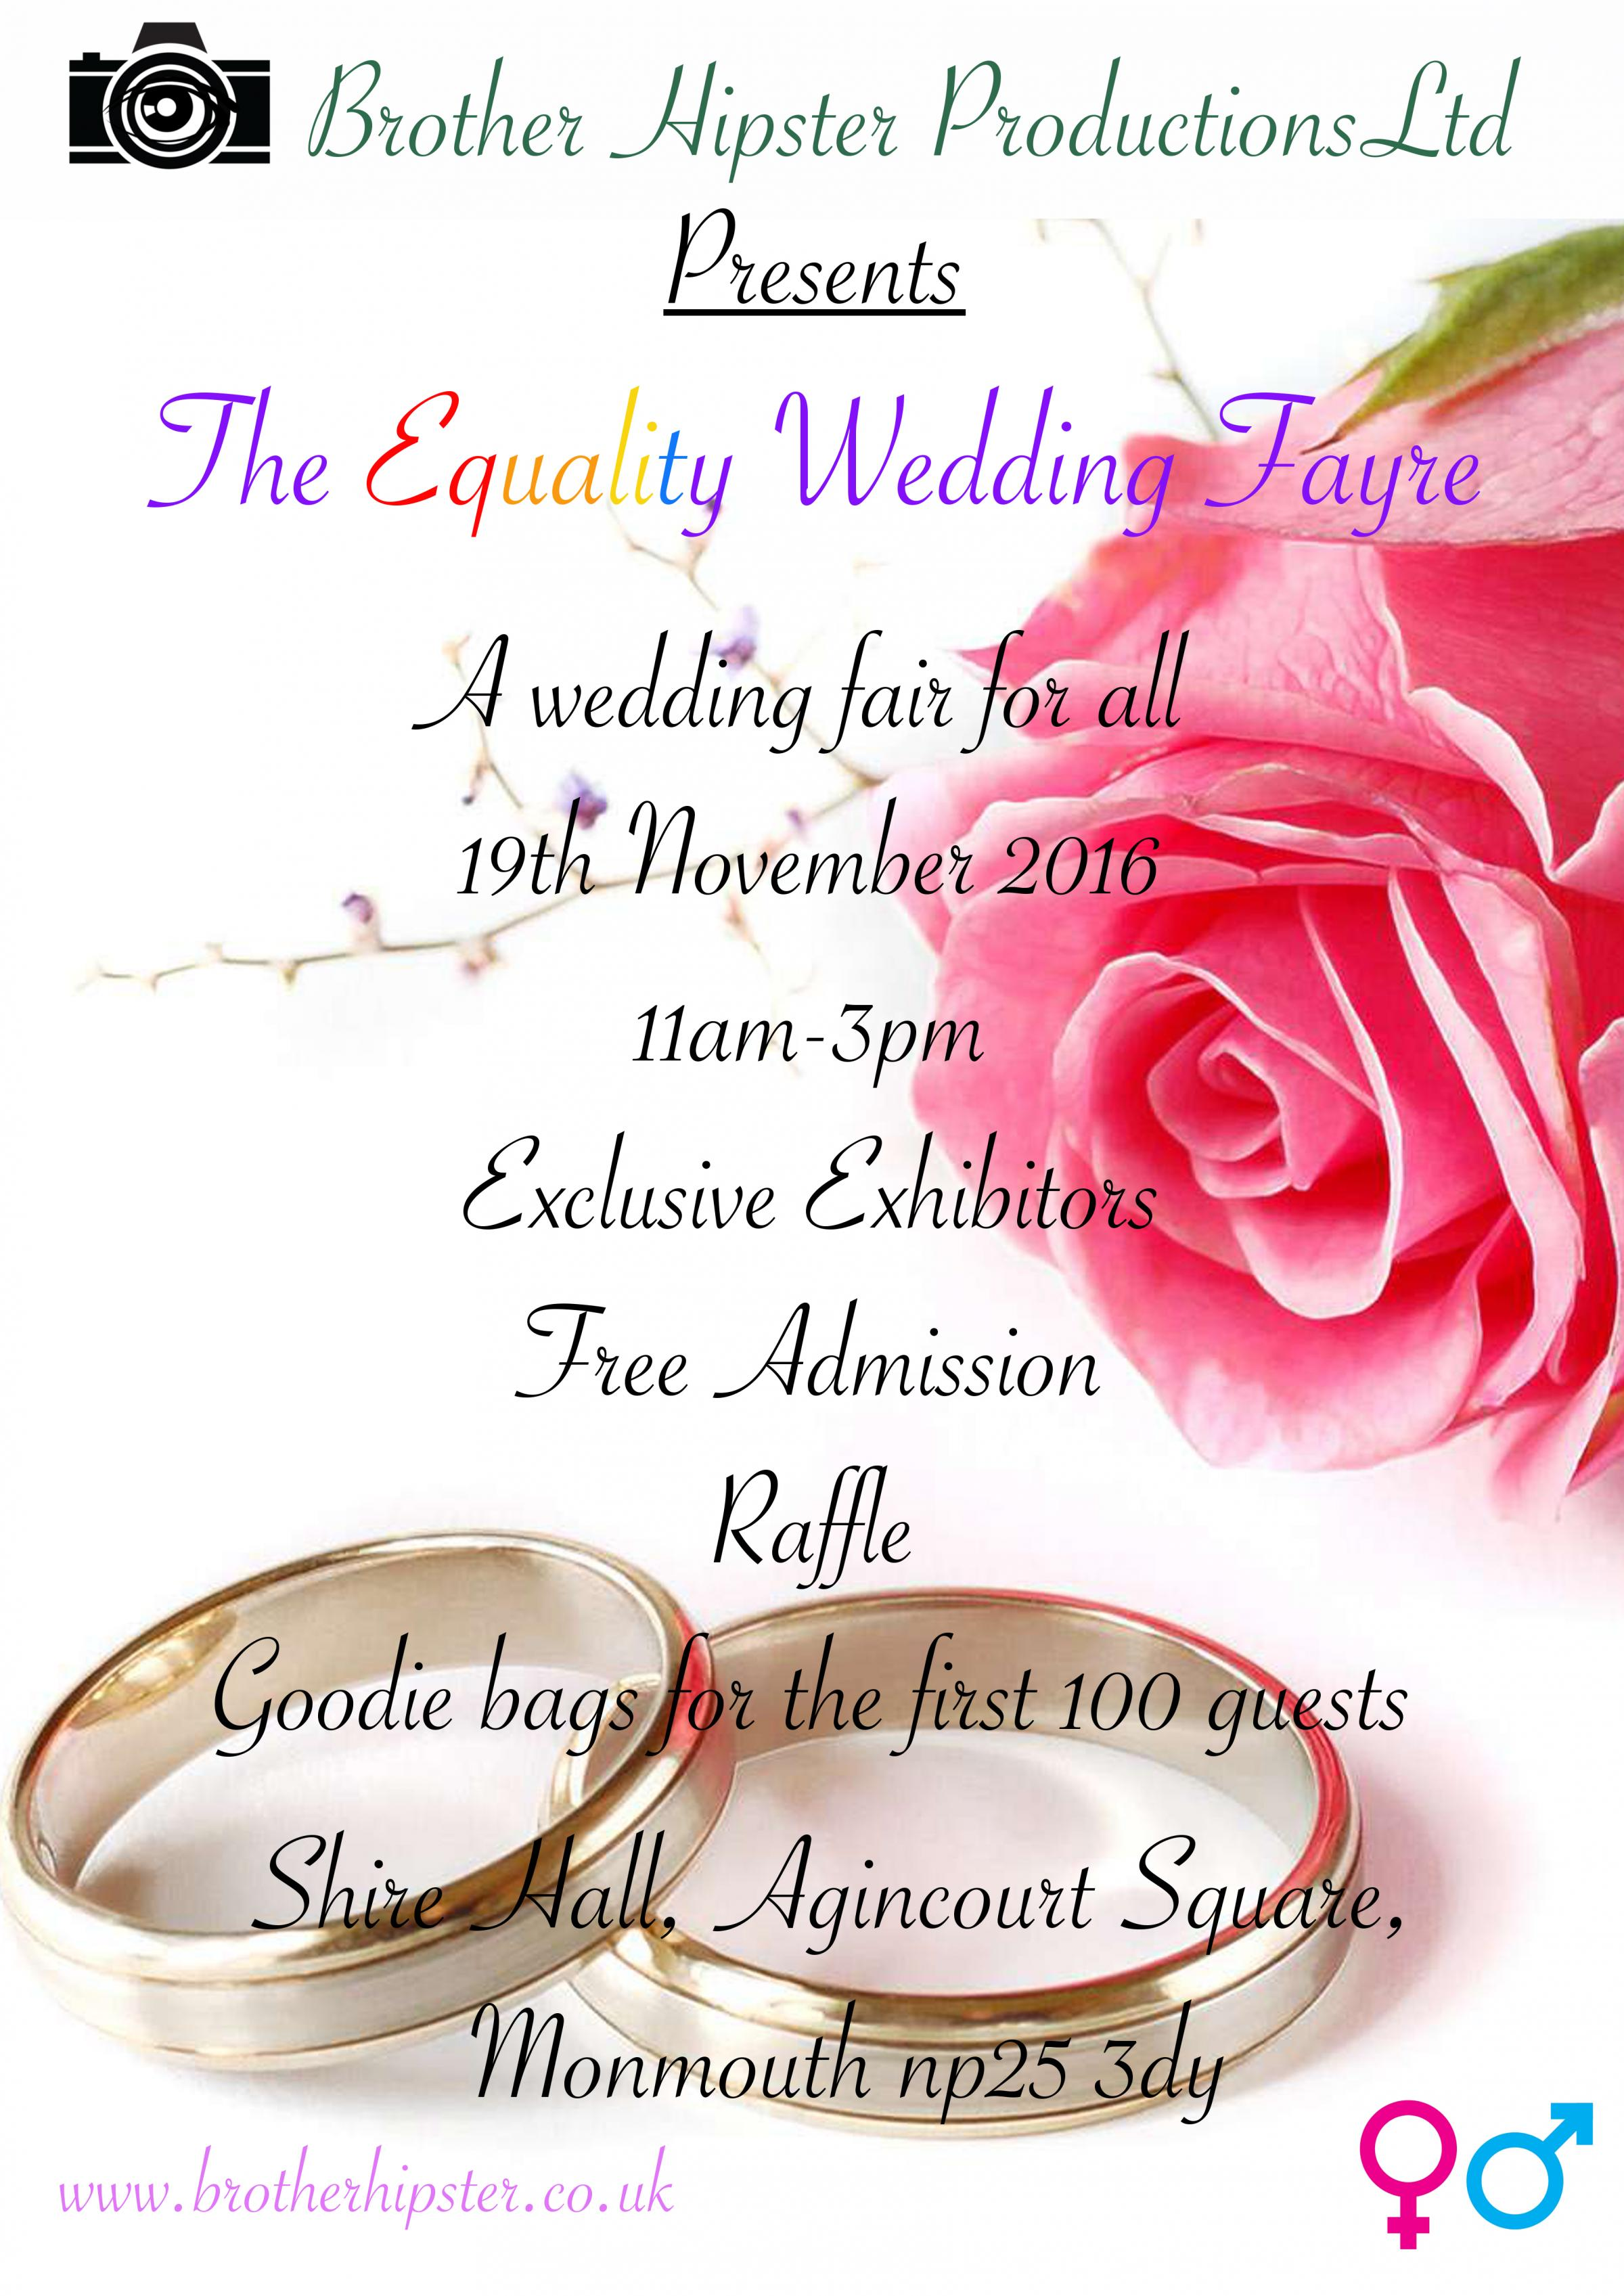 The Equality Wedding Fayre